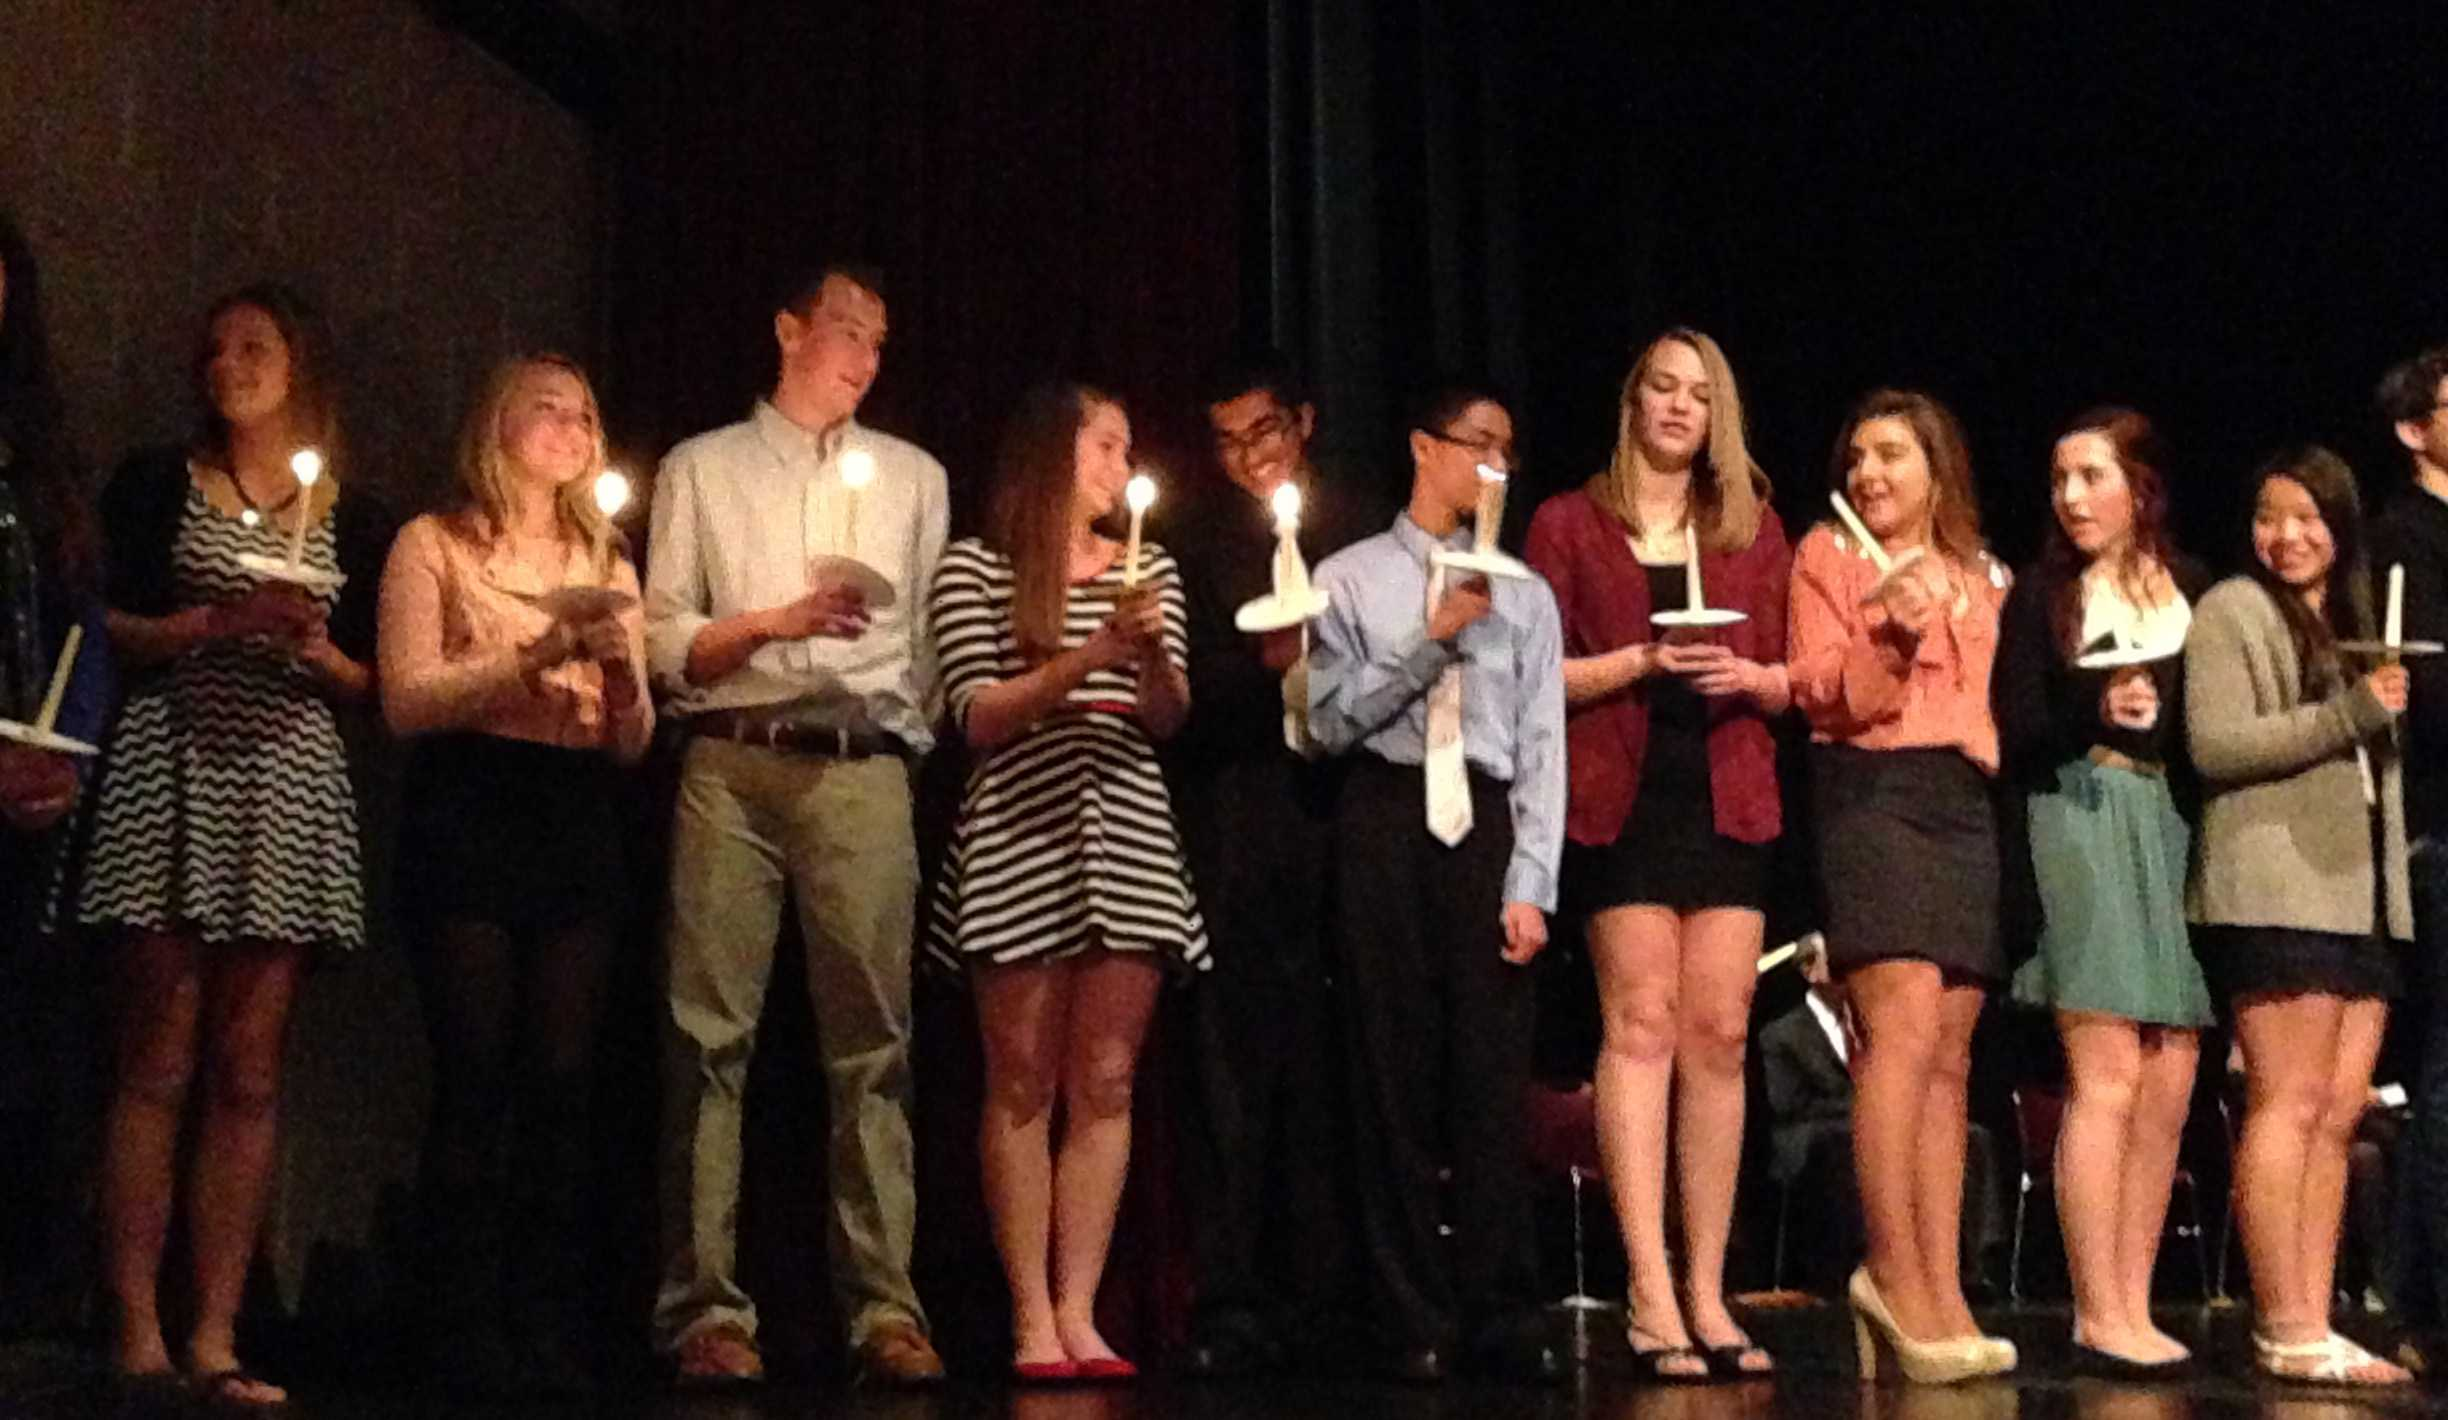 Inductees pass along the flame of knowledge (H. Baldacci).